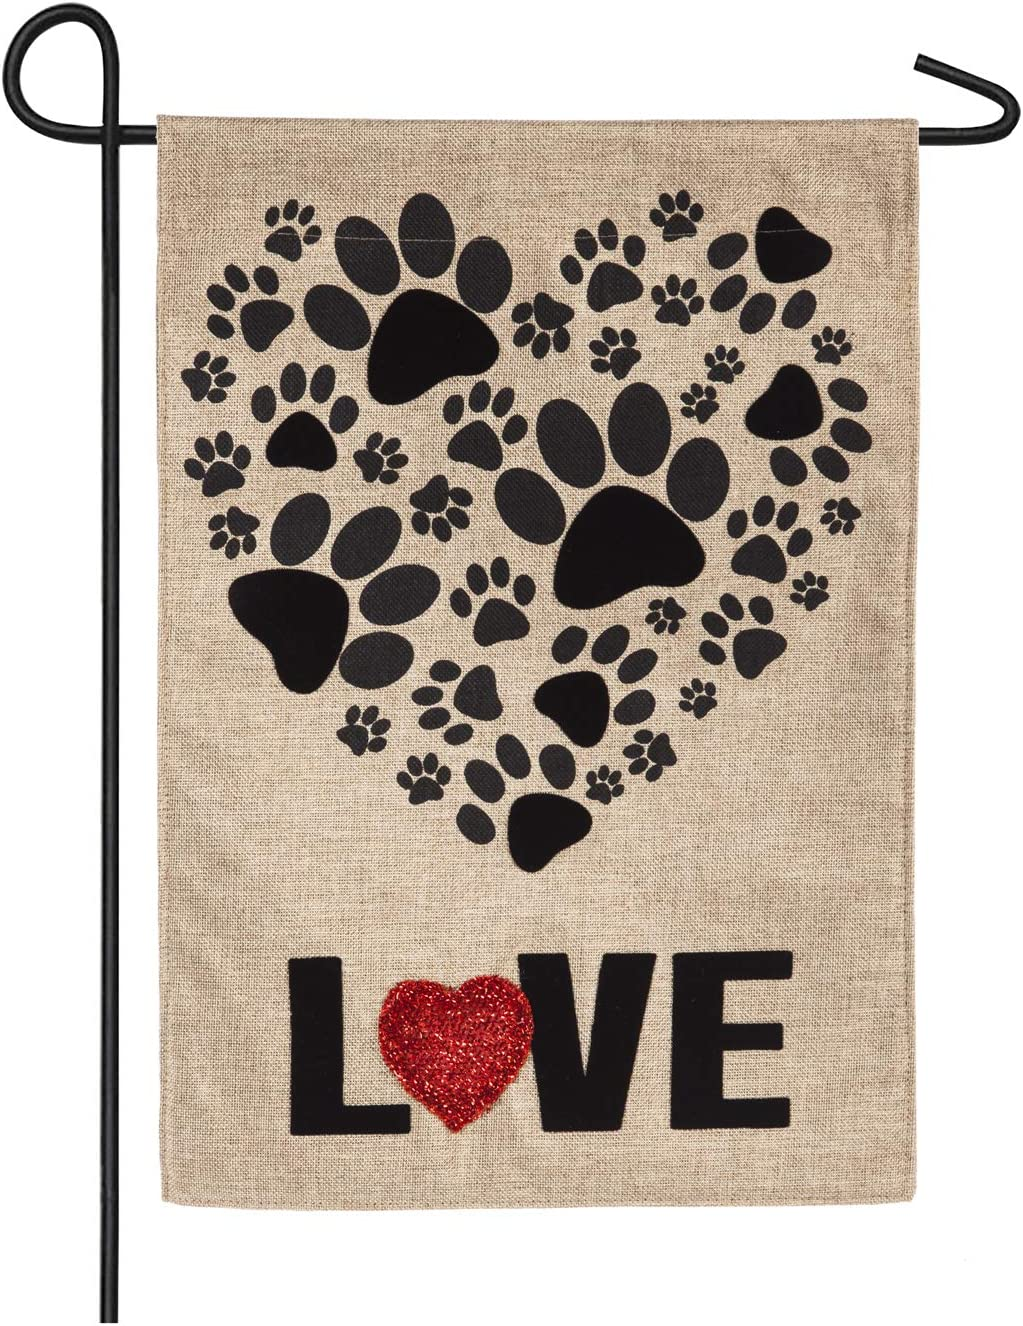 Paw Prints Heart Garden Burlap Flag - 13 x 1 x 18 Inches